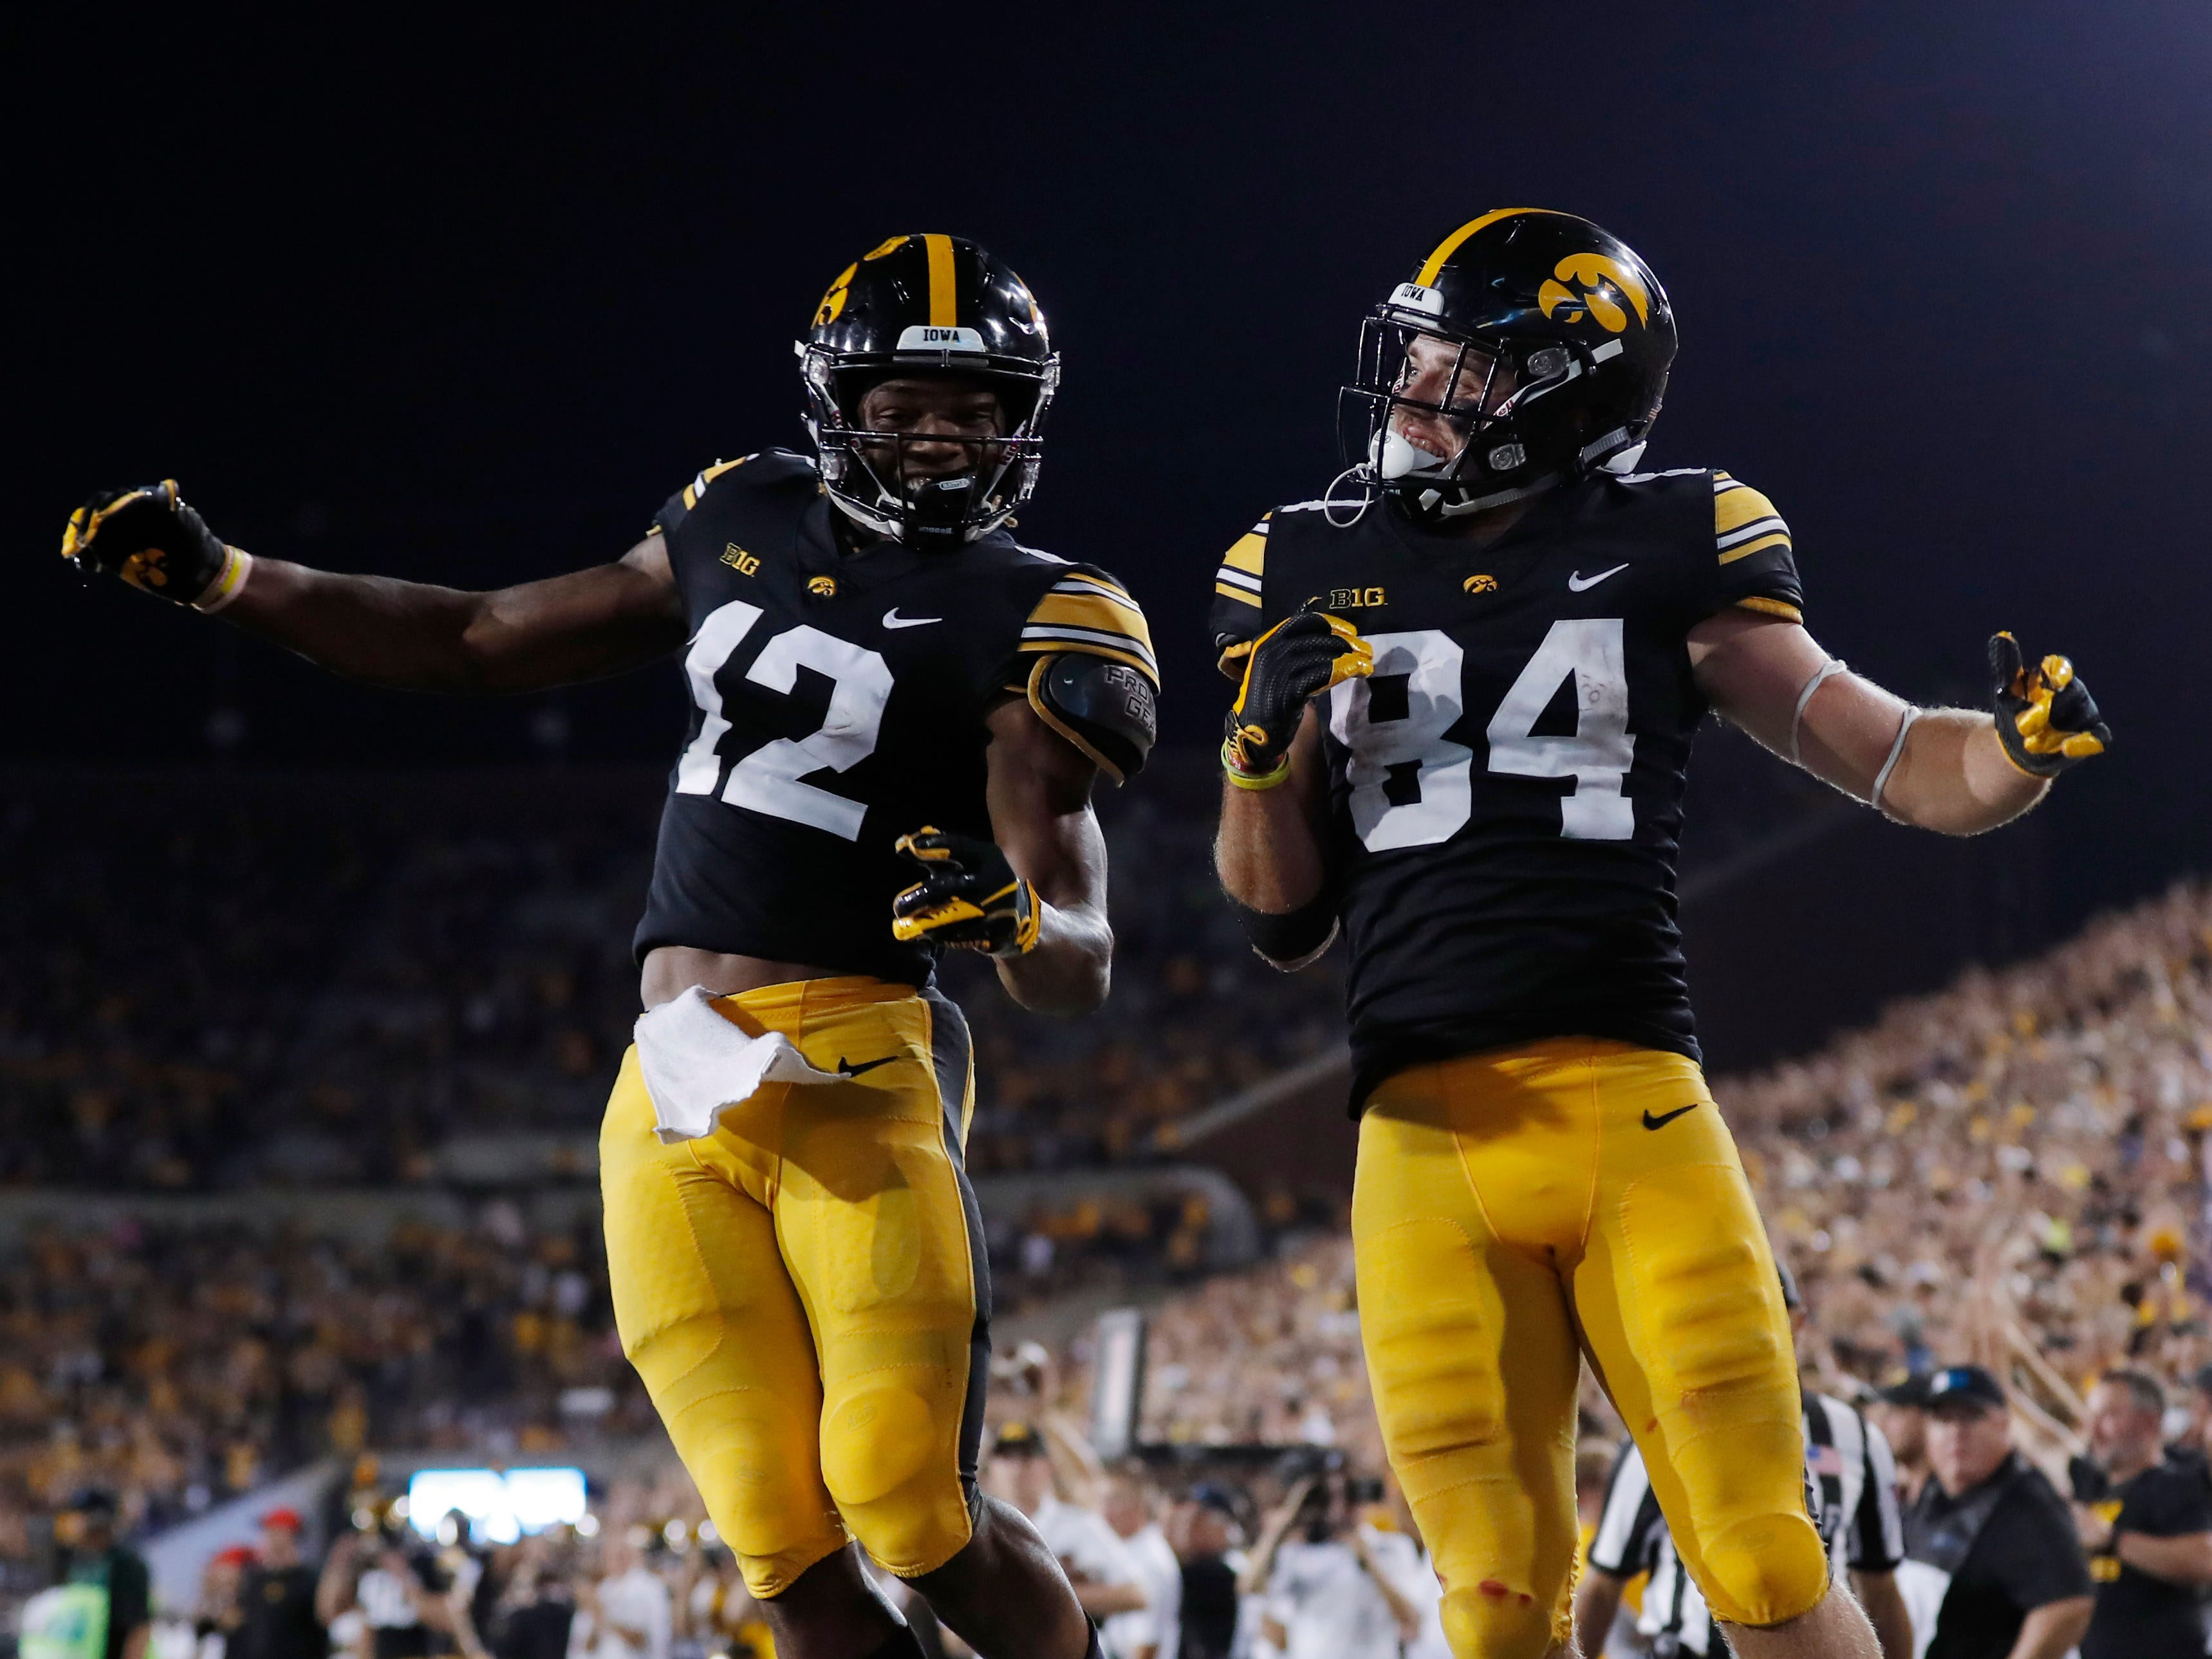 3. Iowa (3-0) – The Hawkeyes are unbeaten heading into conference play for the second straight season and are playing some impressive defense in the process. They allowed only 6 rushing yards against Northern Iowa while quarterback Nate Stanley threw for better than 300 yards. Next week comes the first big test as Wisconsin comes to Kinnick Stadium. Last week: 4.